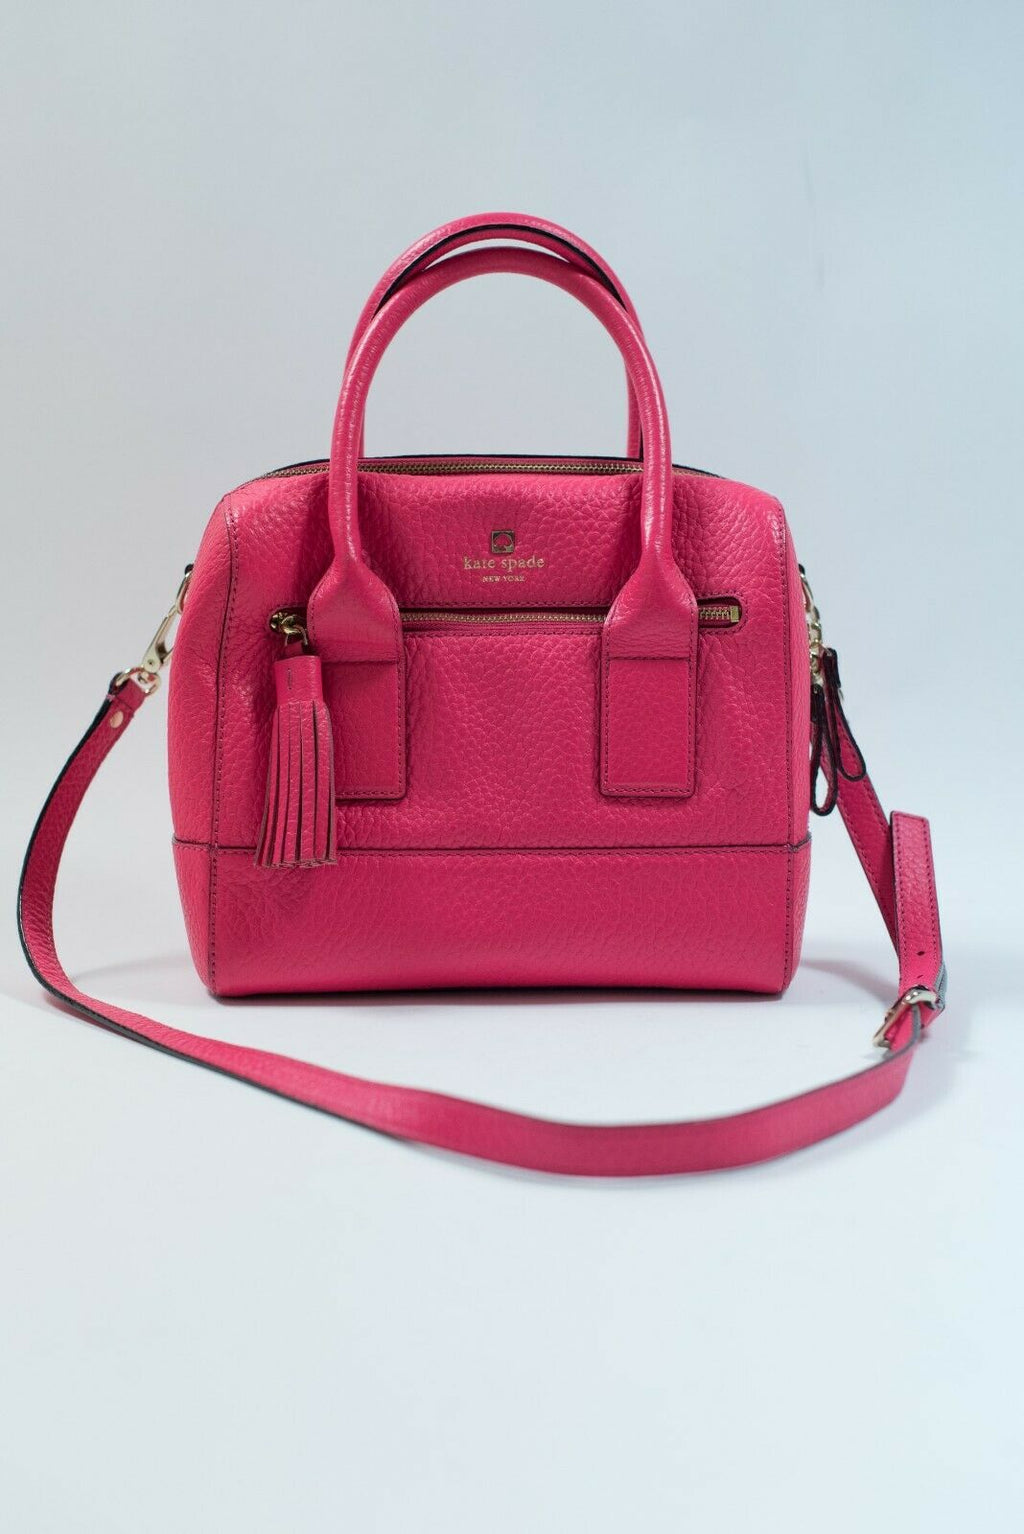 Kate Spade New York Womens Pink Handbag Neon Leather Purse Crossbody Strap Tote